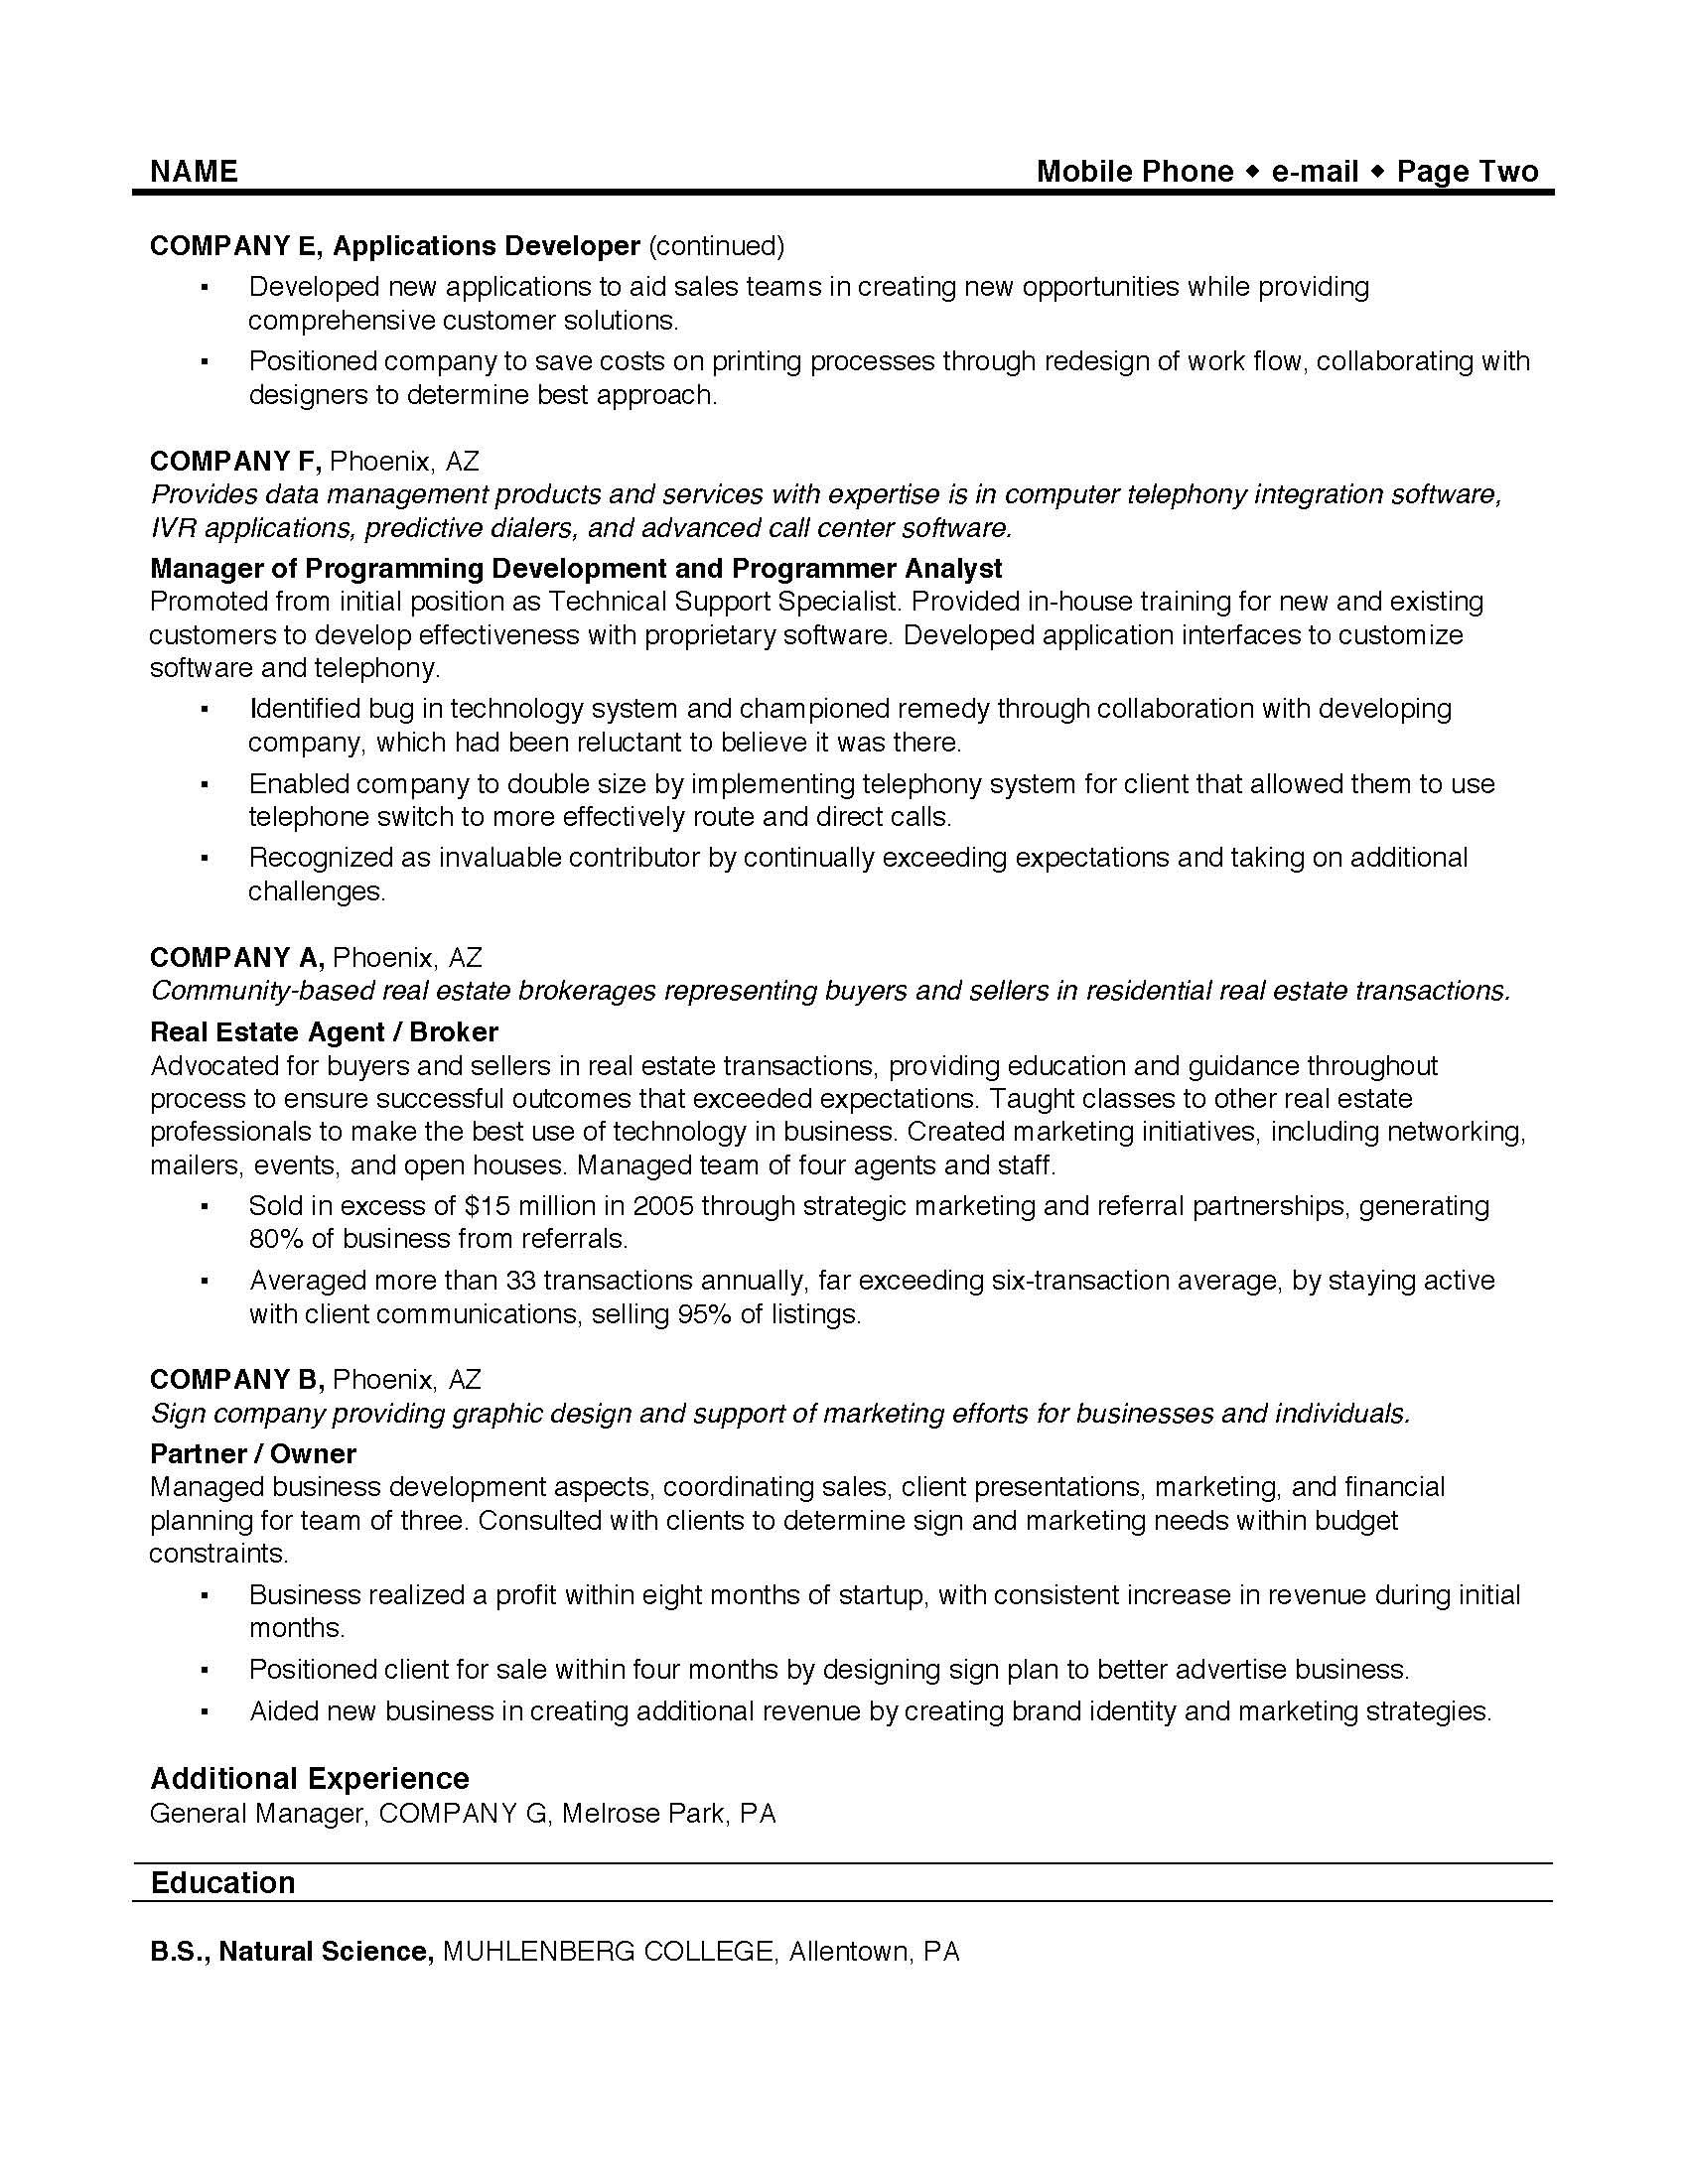 College Student Resume Examples Pics Photos Sample College Student Resume Examples Samples Resumes